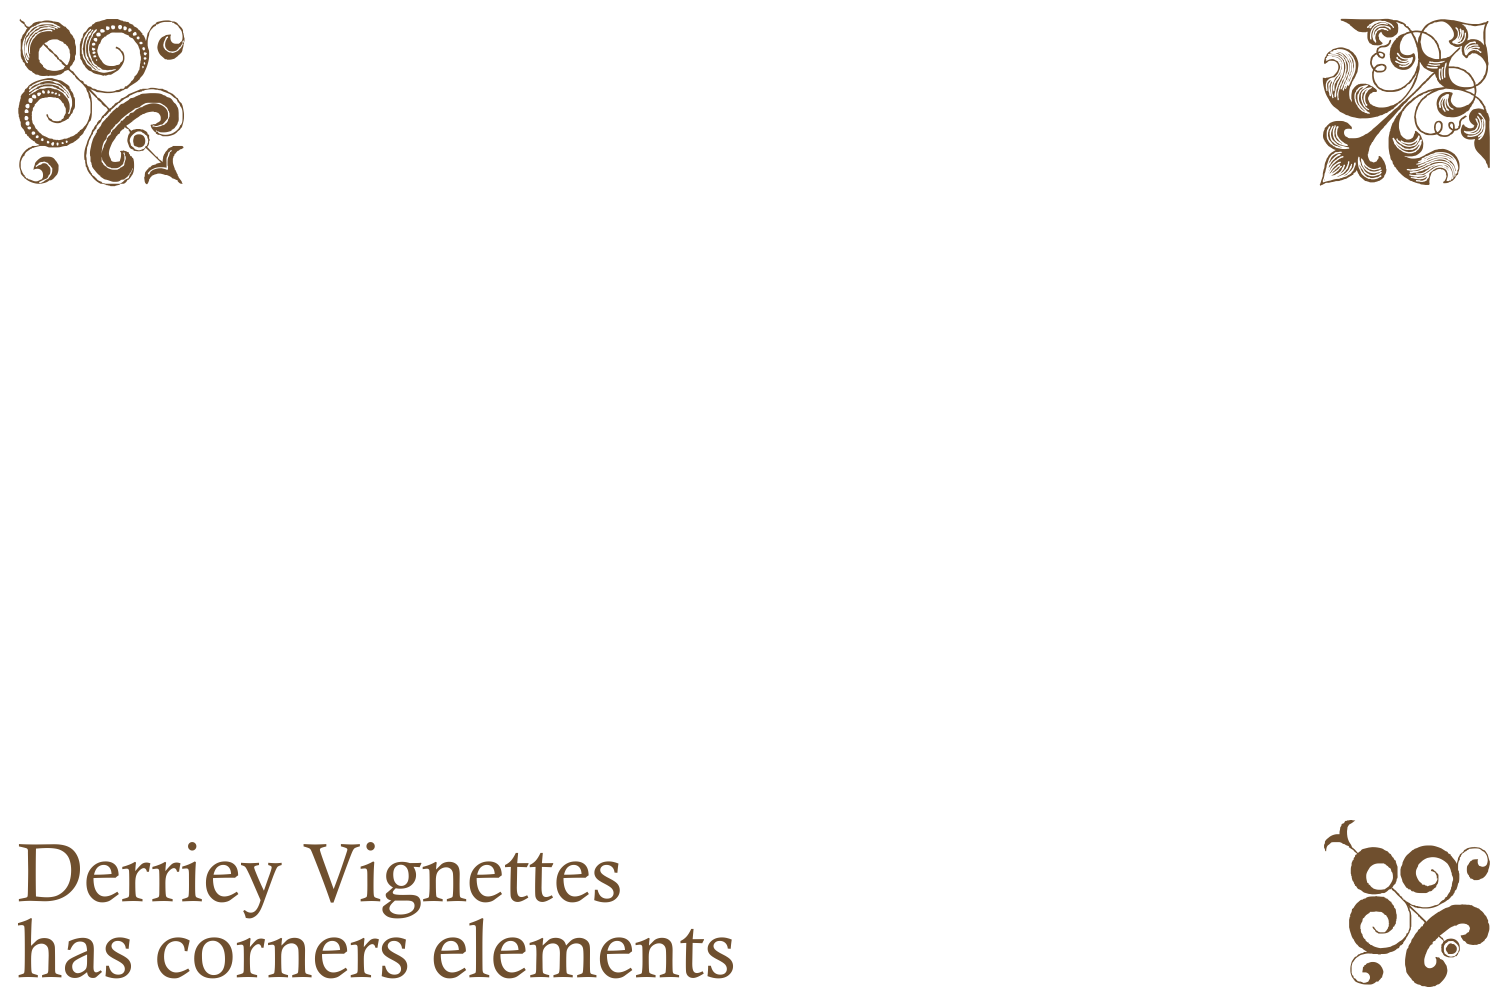 Derriey Vignettes Family Pack (5 fonts) example image 3